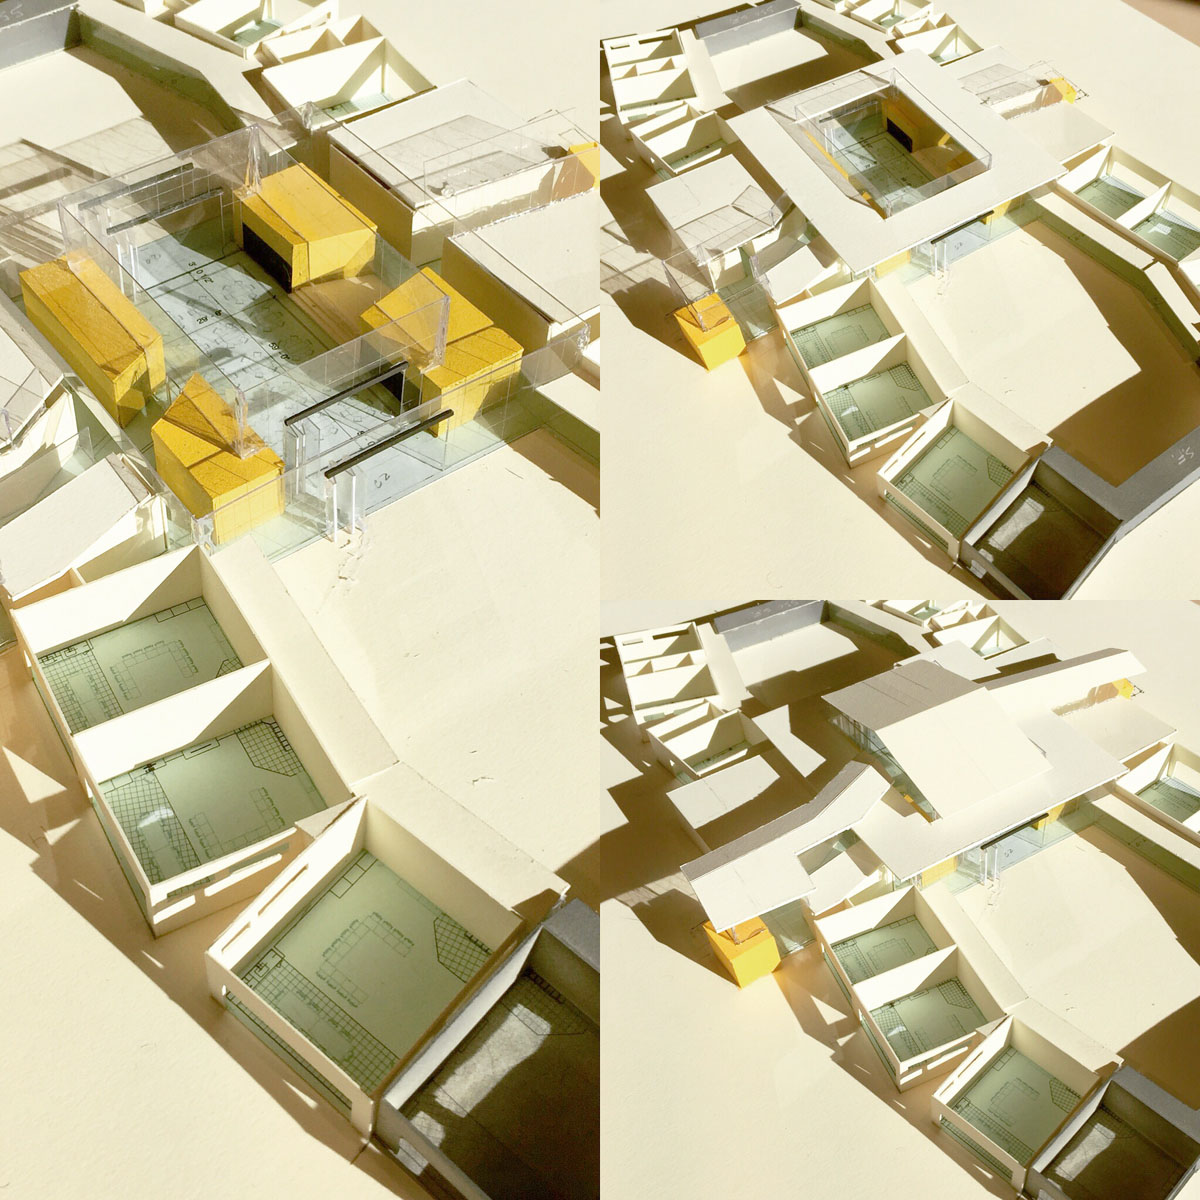 Collage of four aerial views showing the scale model for the school.